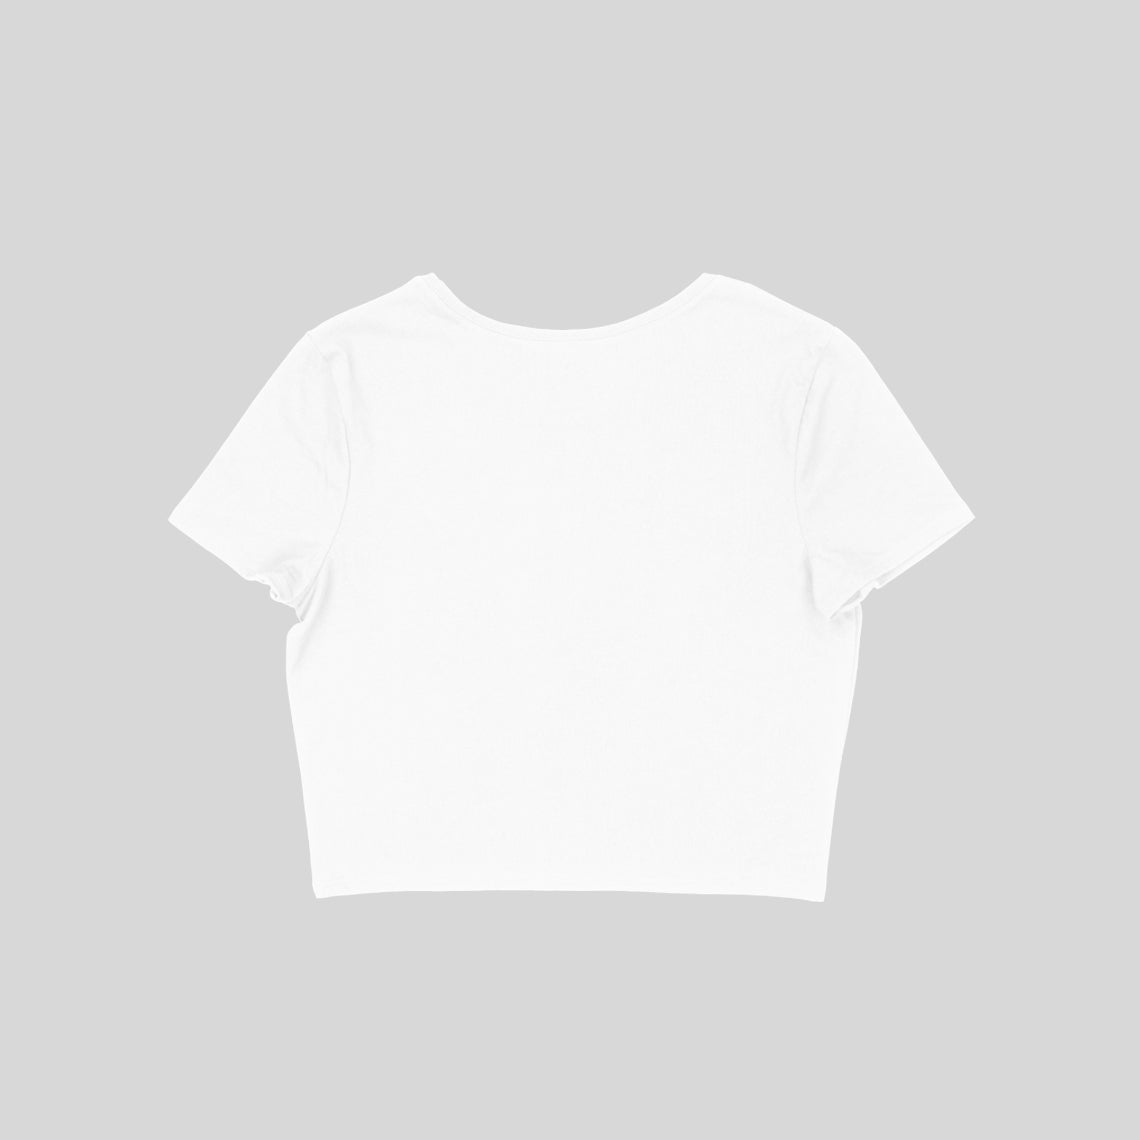 I Have Bean Thinking - Women's Crop Top